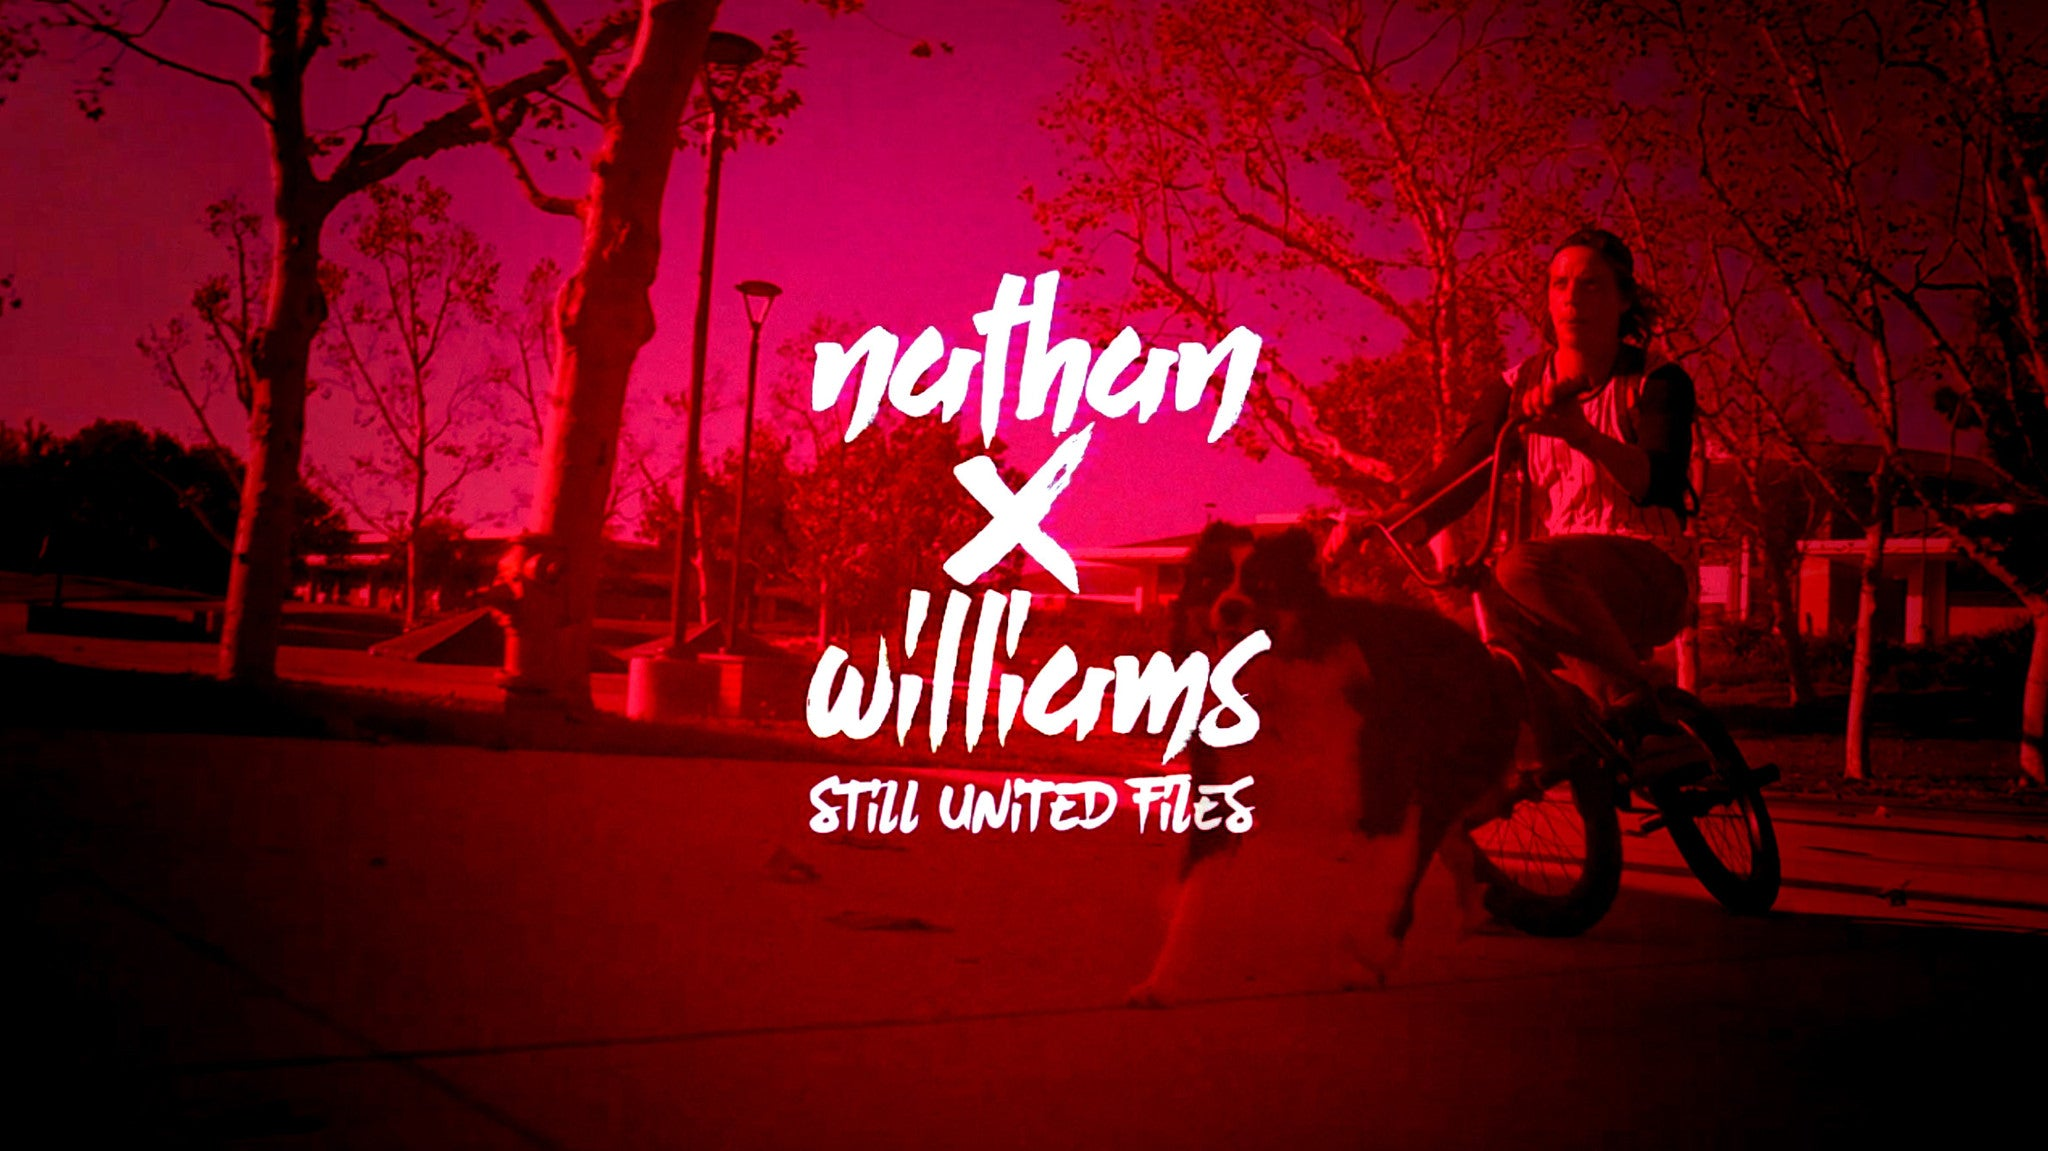 Nathan Williams- Still United Files